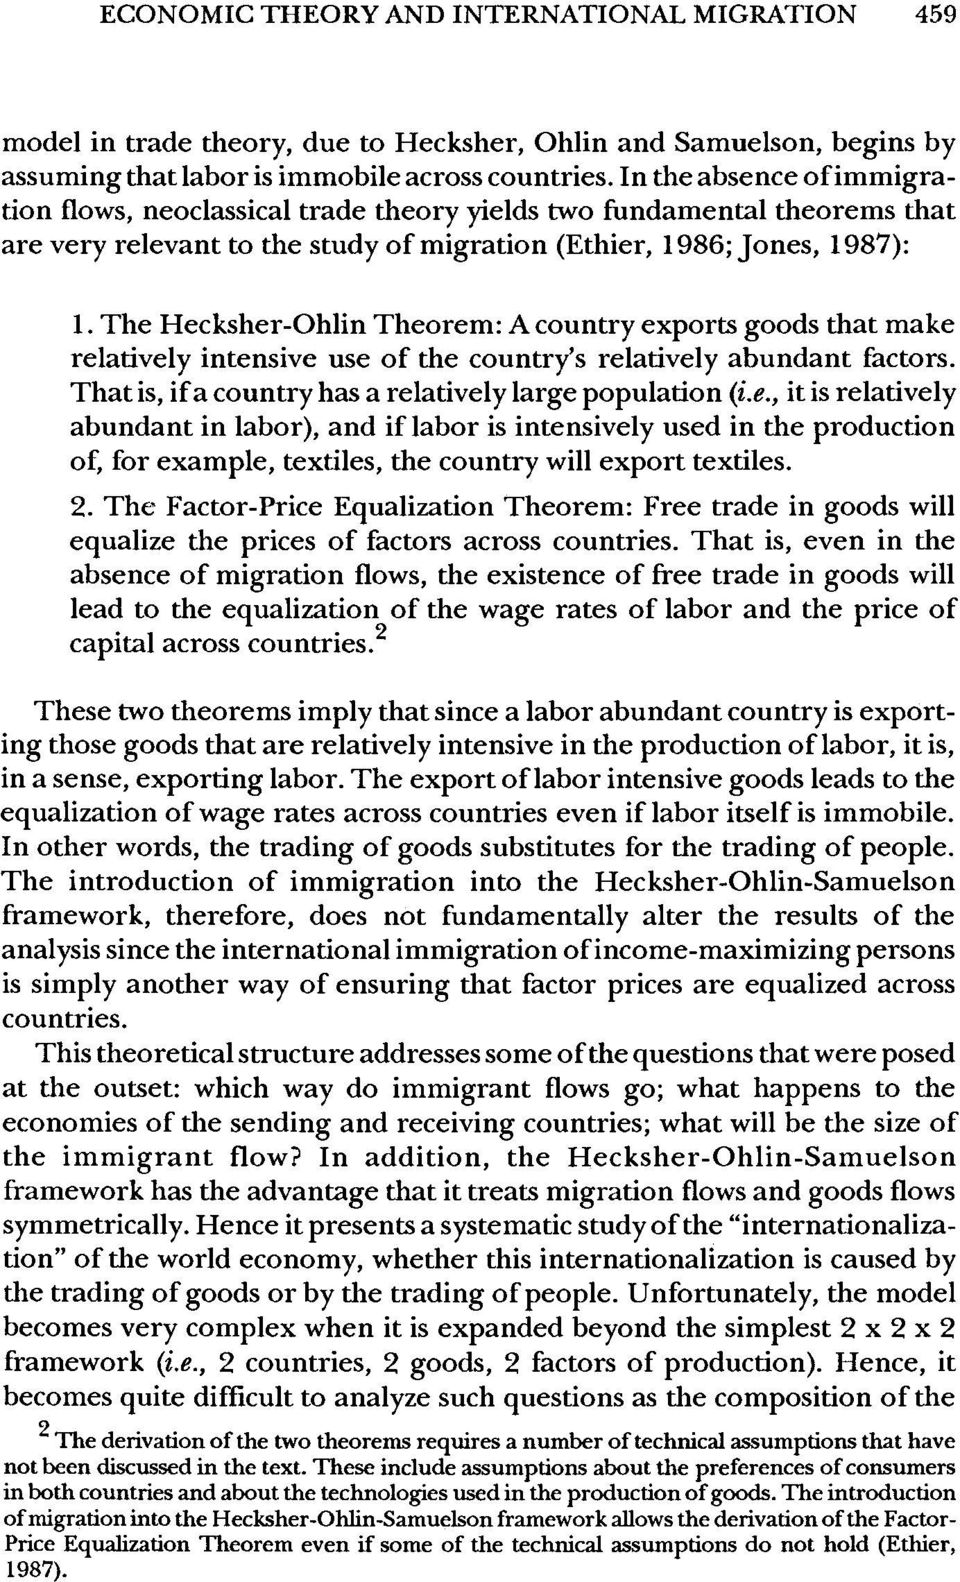 The Hecksher-Ohlin Theorem: A country exports goods that make relatively intensive use of the country's relatively abundant factors. That is, if a country has a relatively large population (i.e., it is relatively abundant in labor), and if labor is intensively used in the production of, for example, textiles, the country will export textiles.